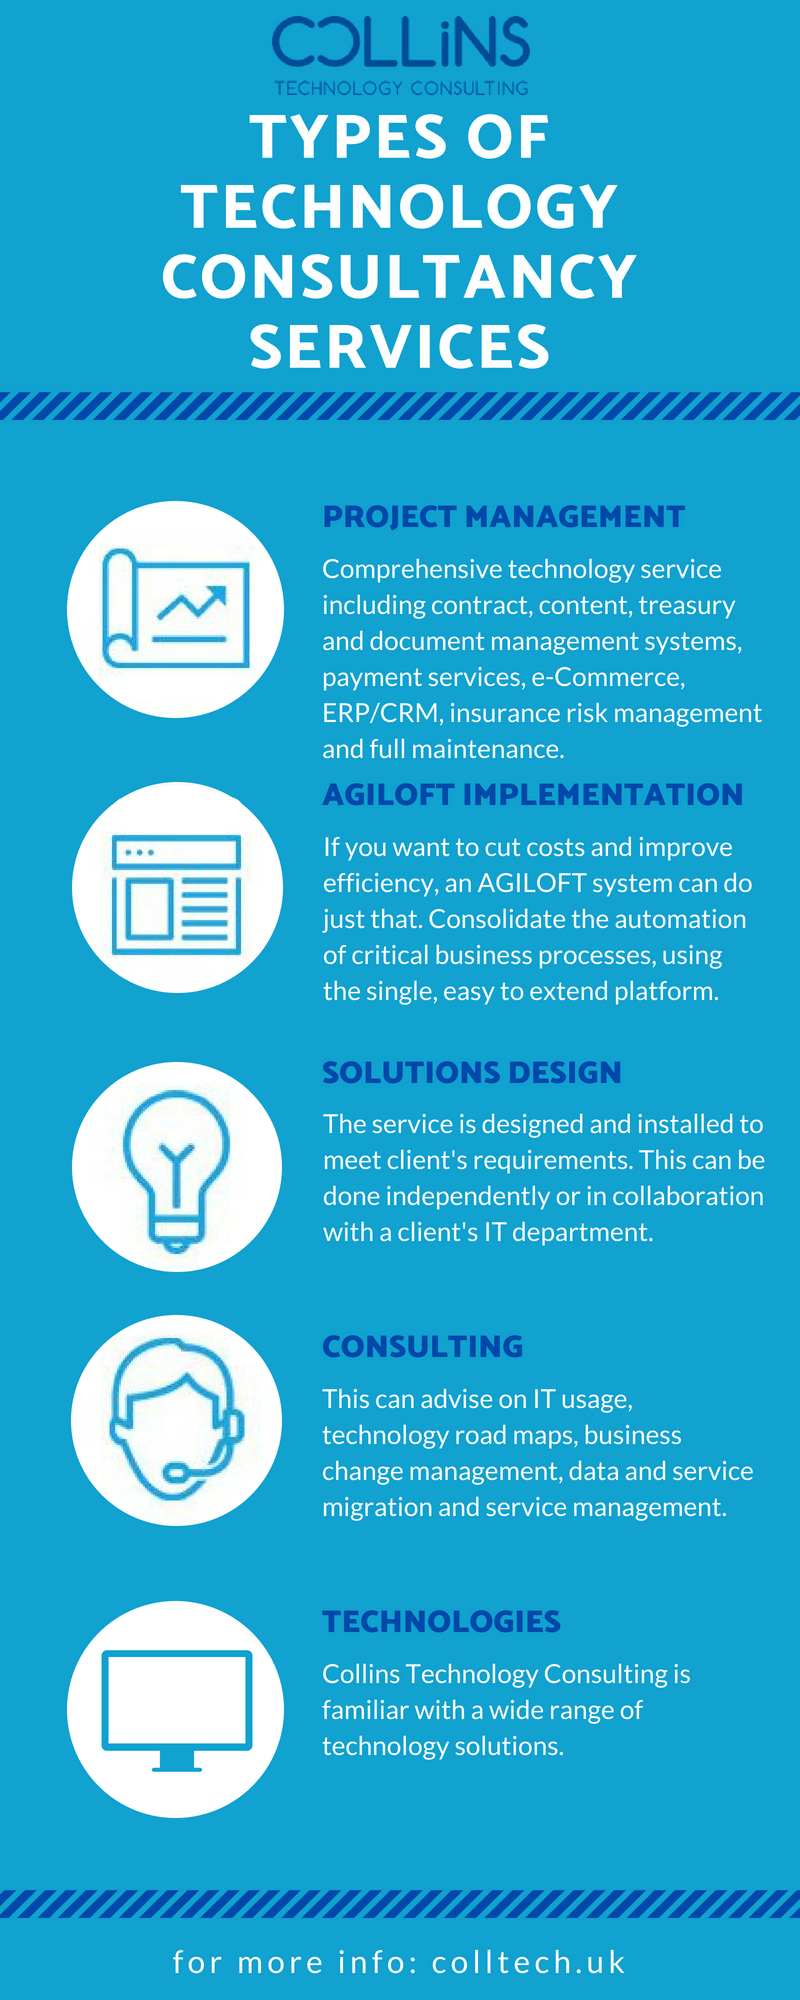 technology-consultancy-services-types-infographic-galleryr